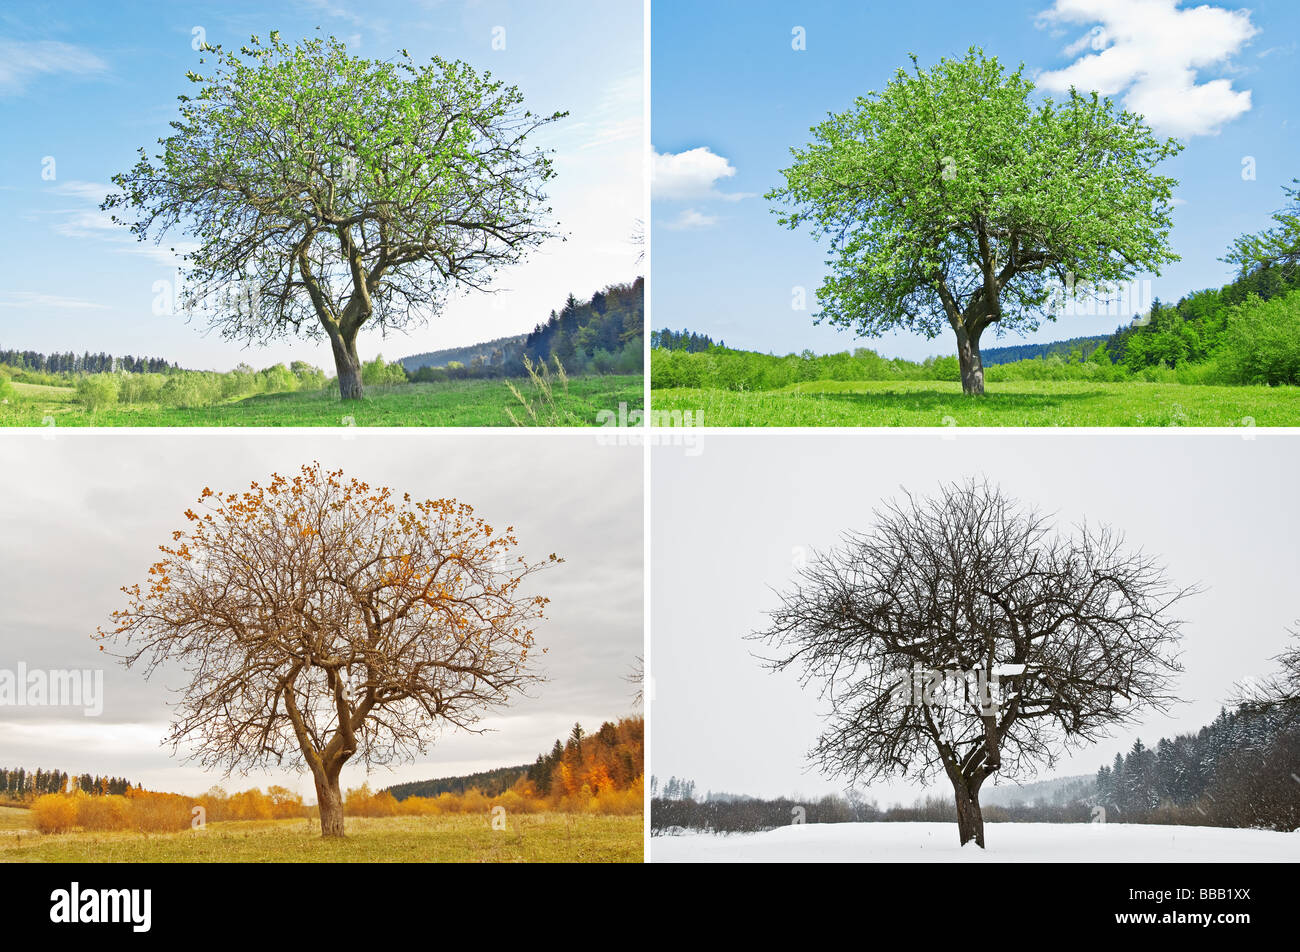 Image result for free photo of a tree in four seasons